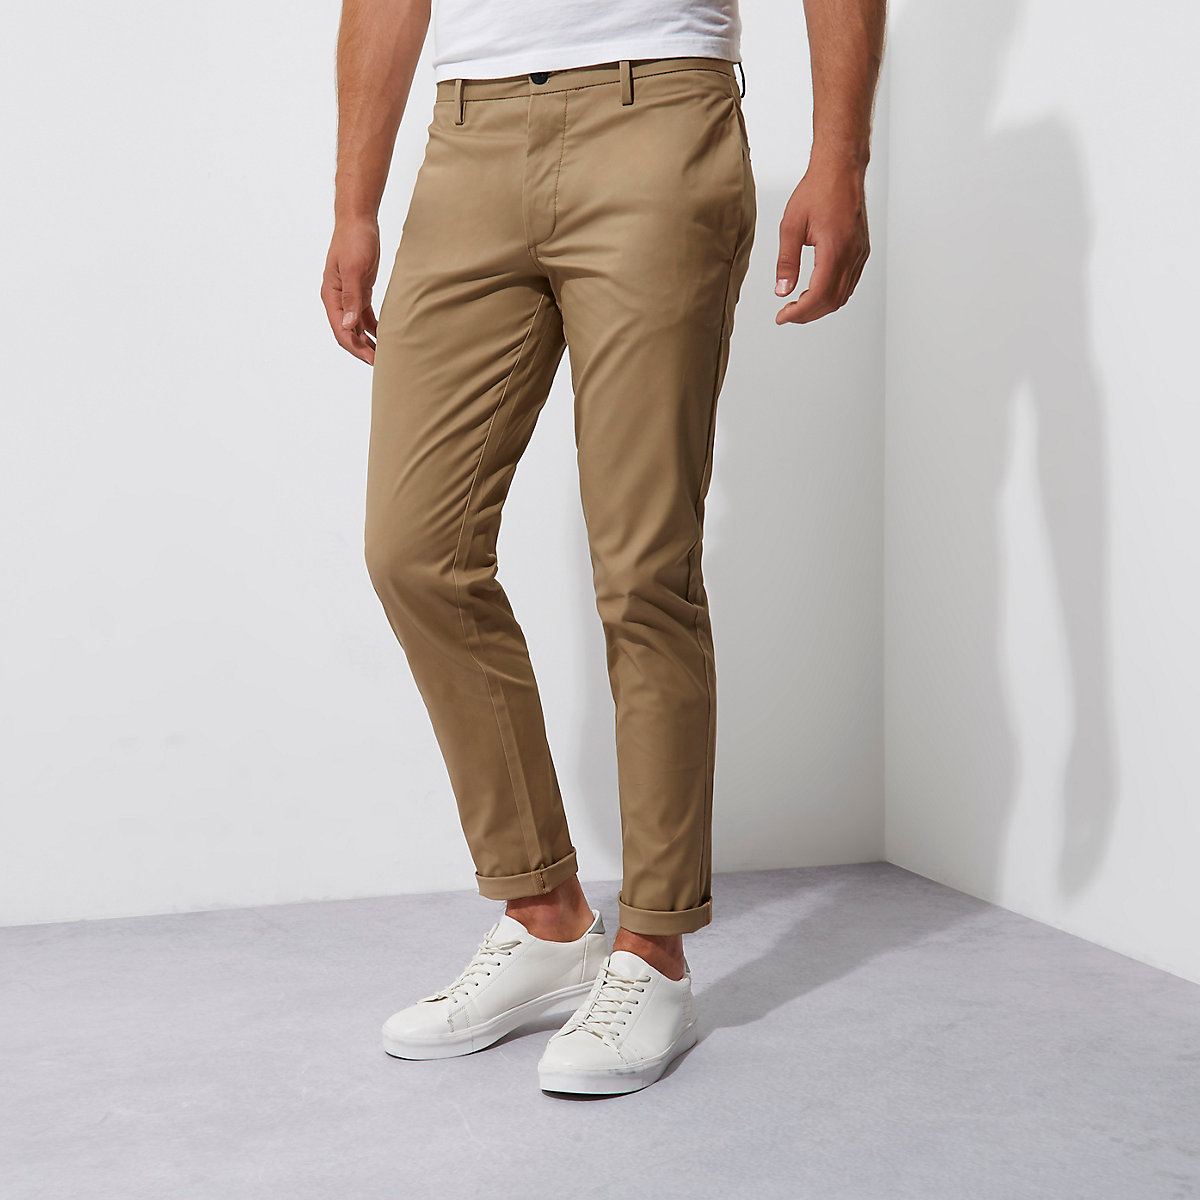 Tan stretch slim fit chino pants